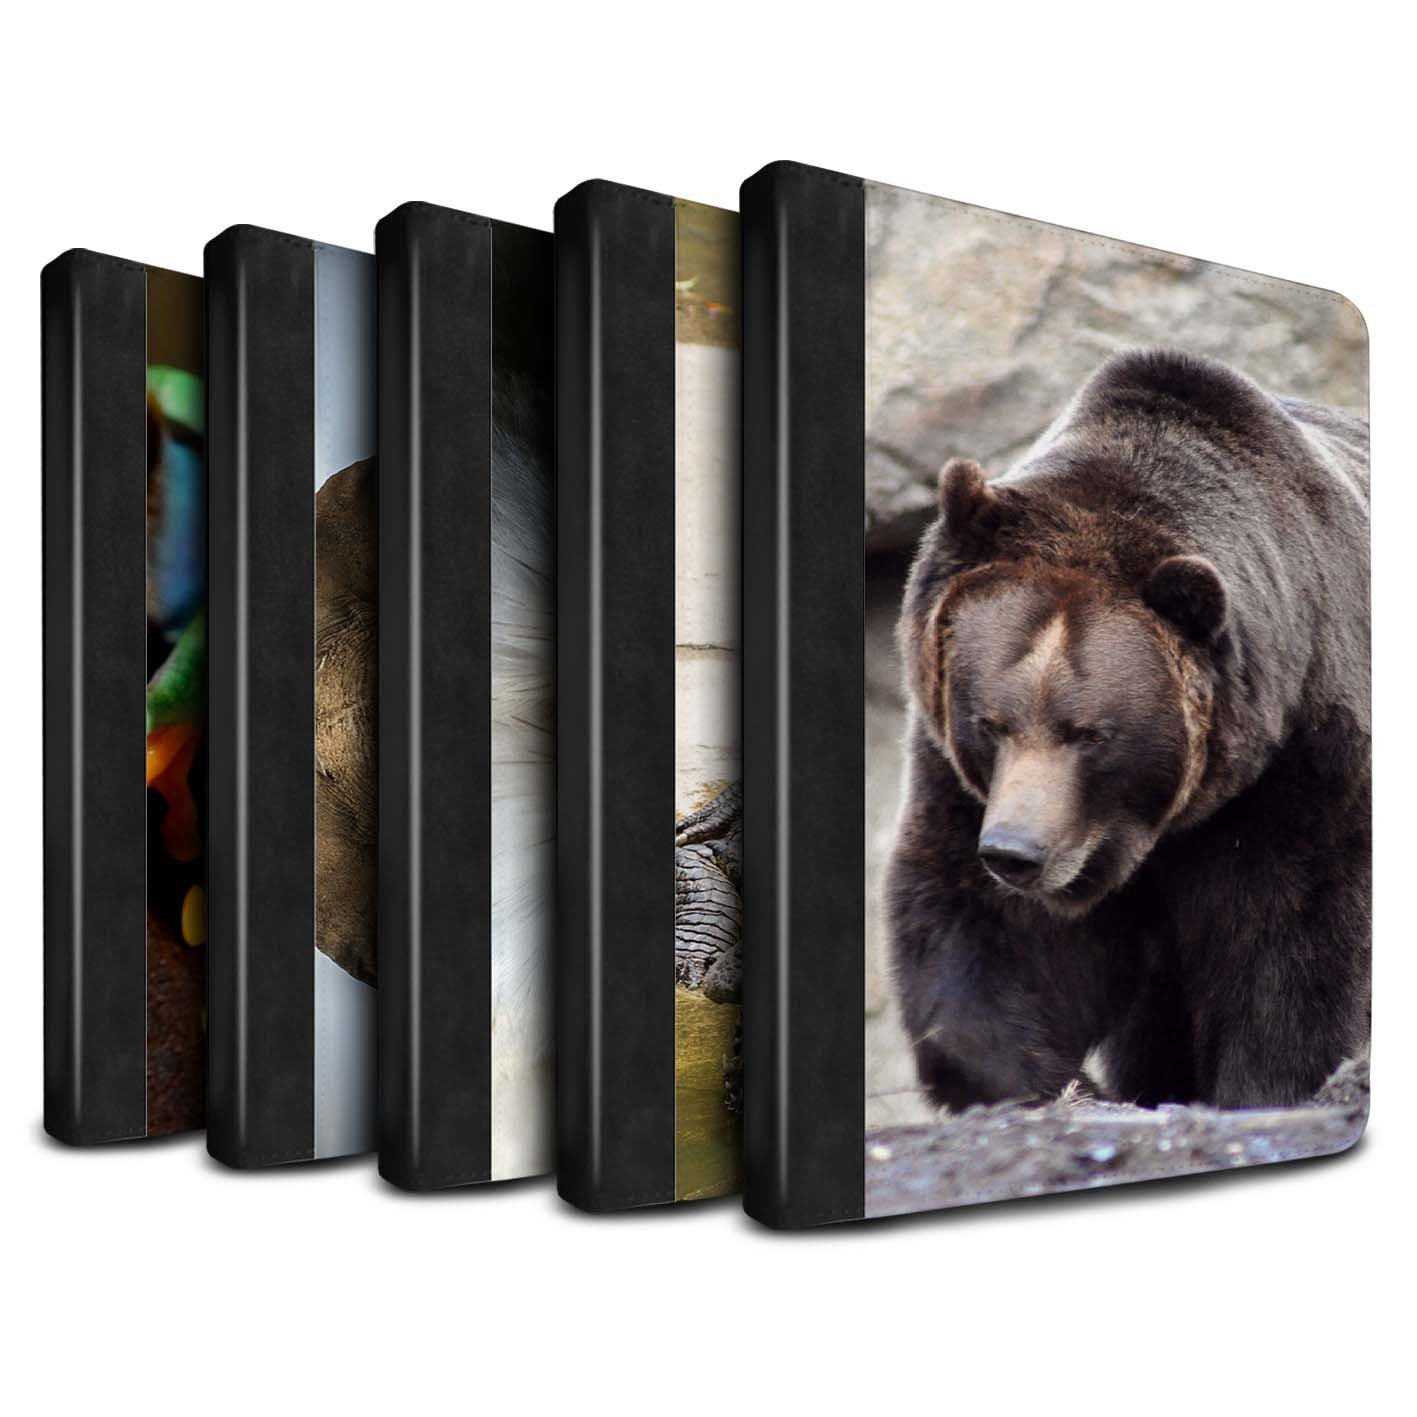 STUFF4 PU Leather Book/Cover Case for Apple iPad 9.7 (2017) tablets / Multipack (20 Pck) Design / Wildlife Animals Collection